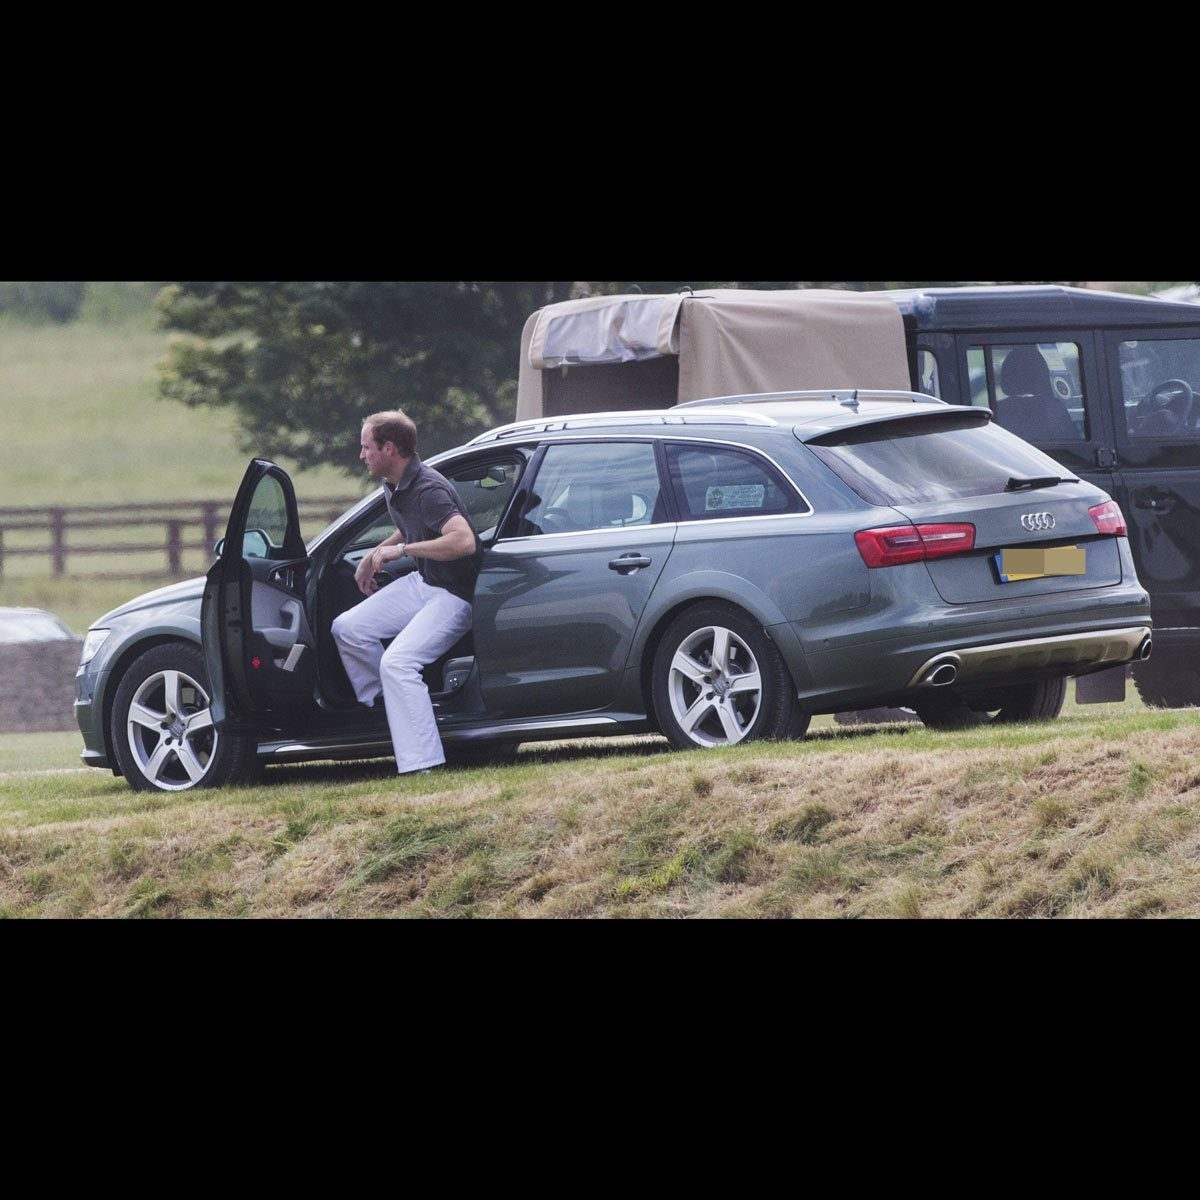 Prince William gets out of Prince Charles' Audi wagon in the country